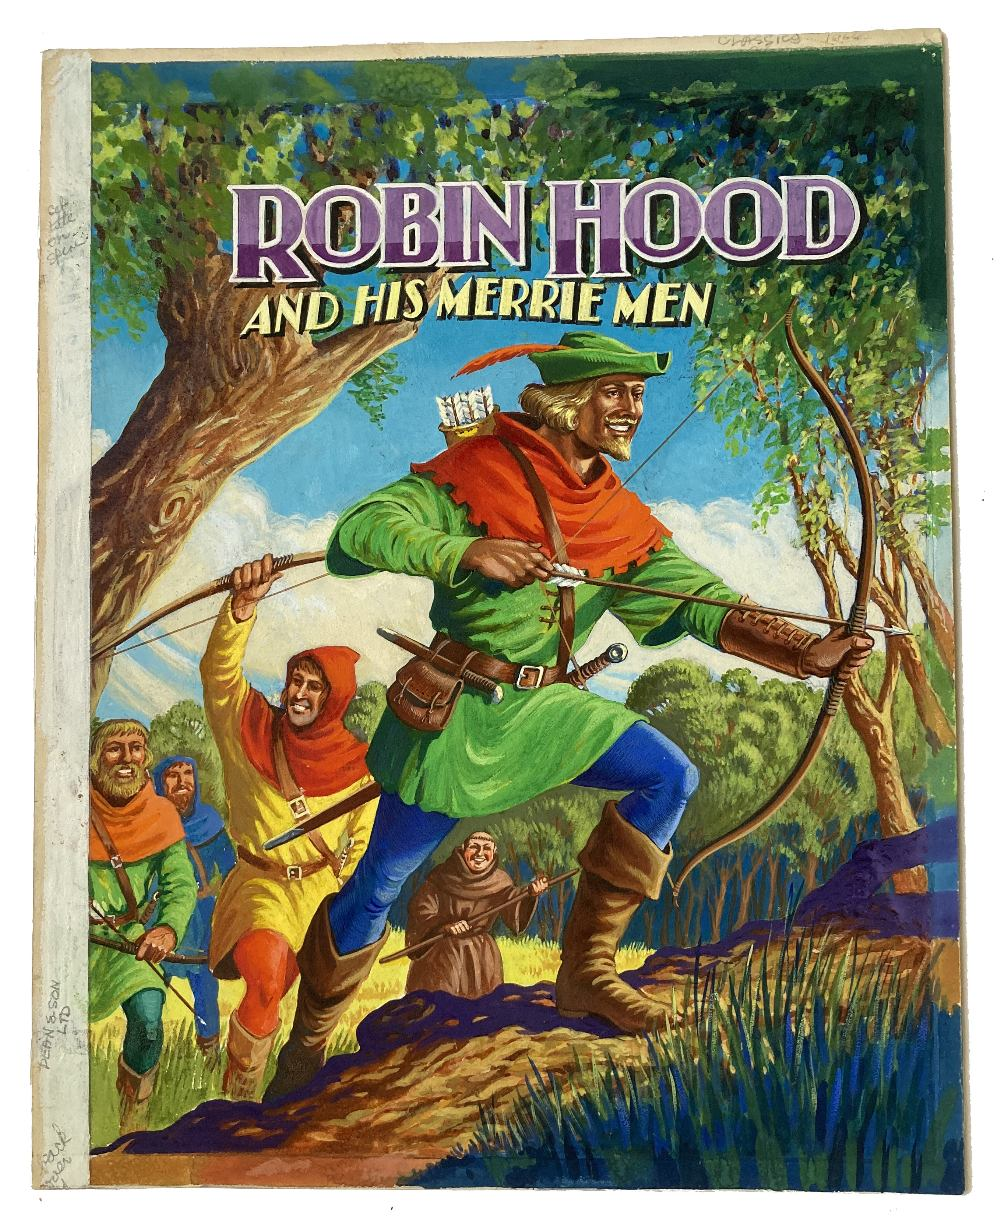 Lot 59 - Robin Hood and His Merrie Men original front cover artwork for the book by Dean & Sons (1965).